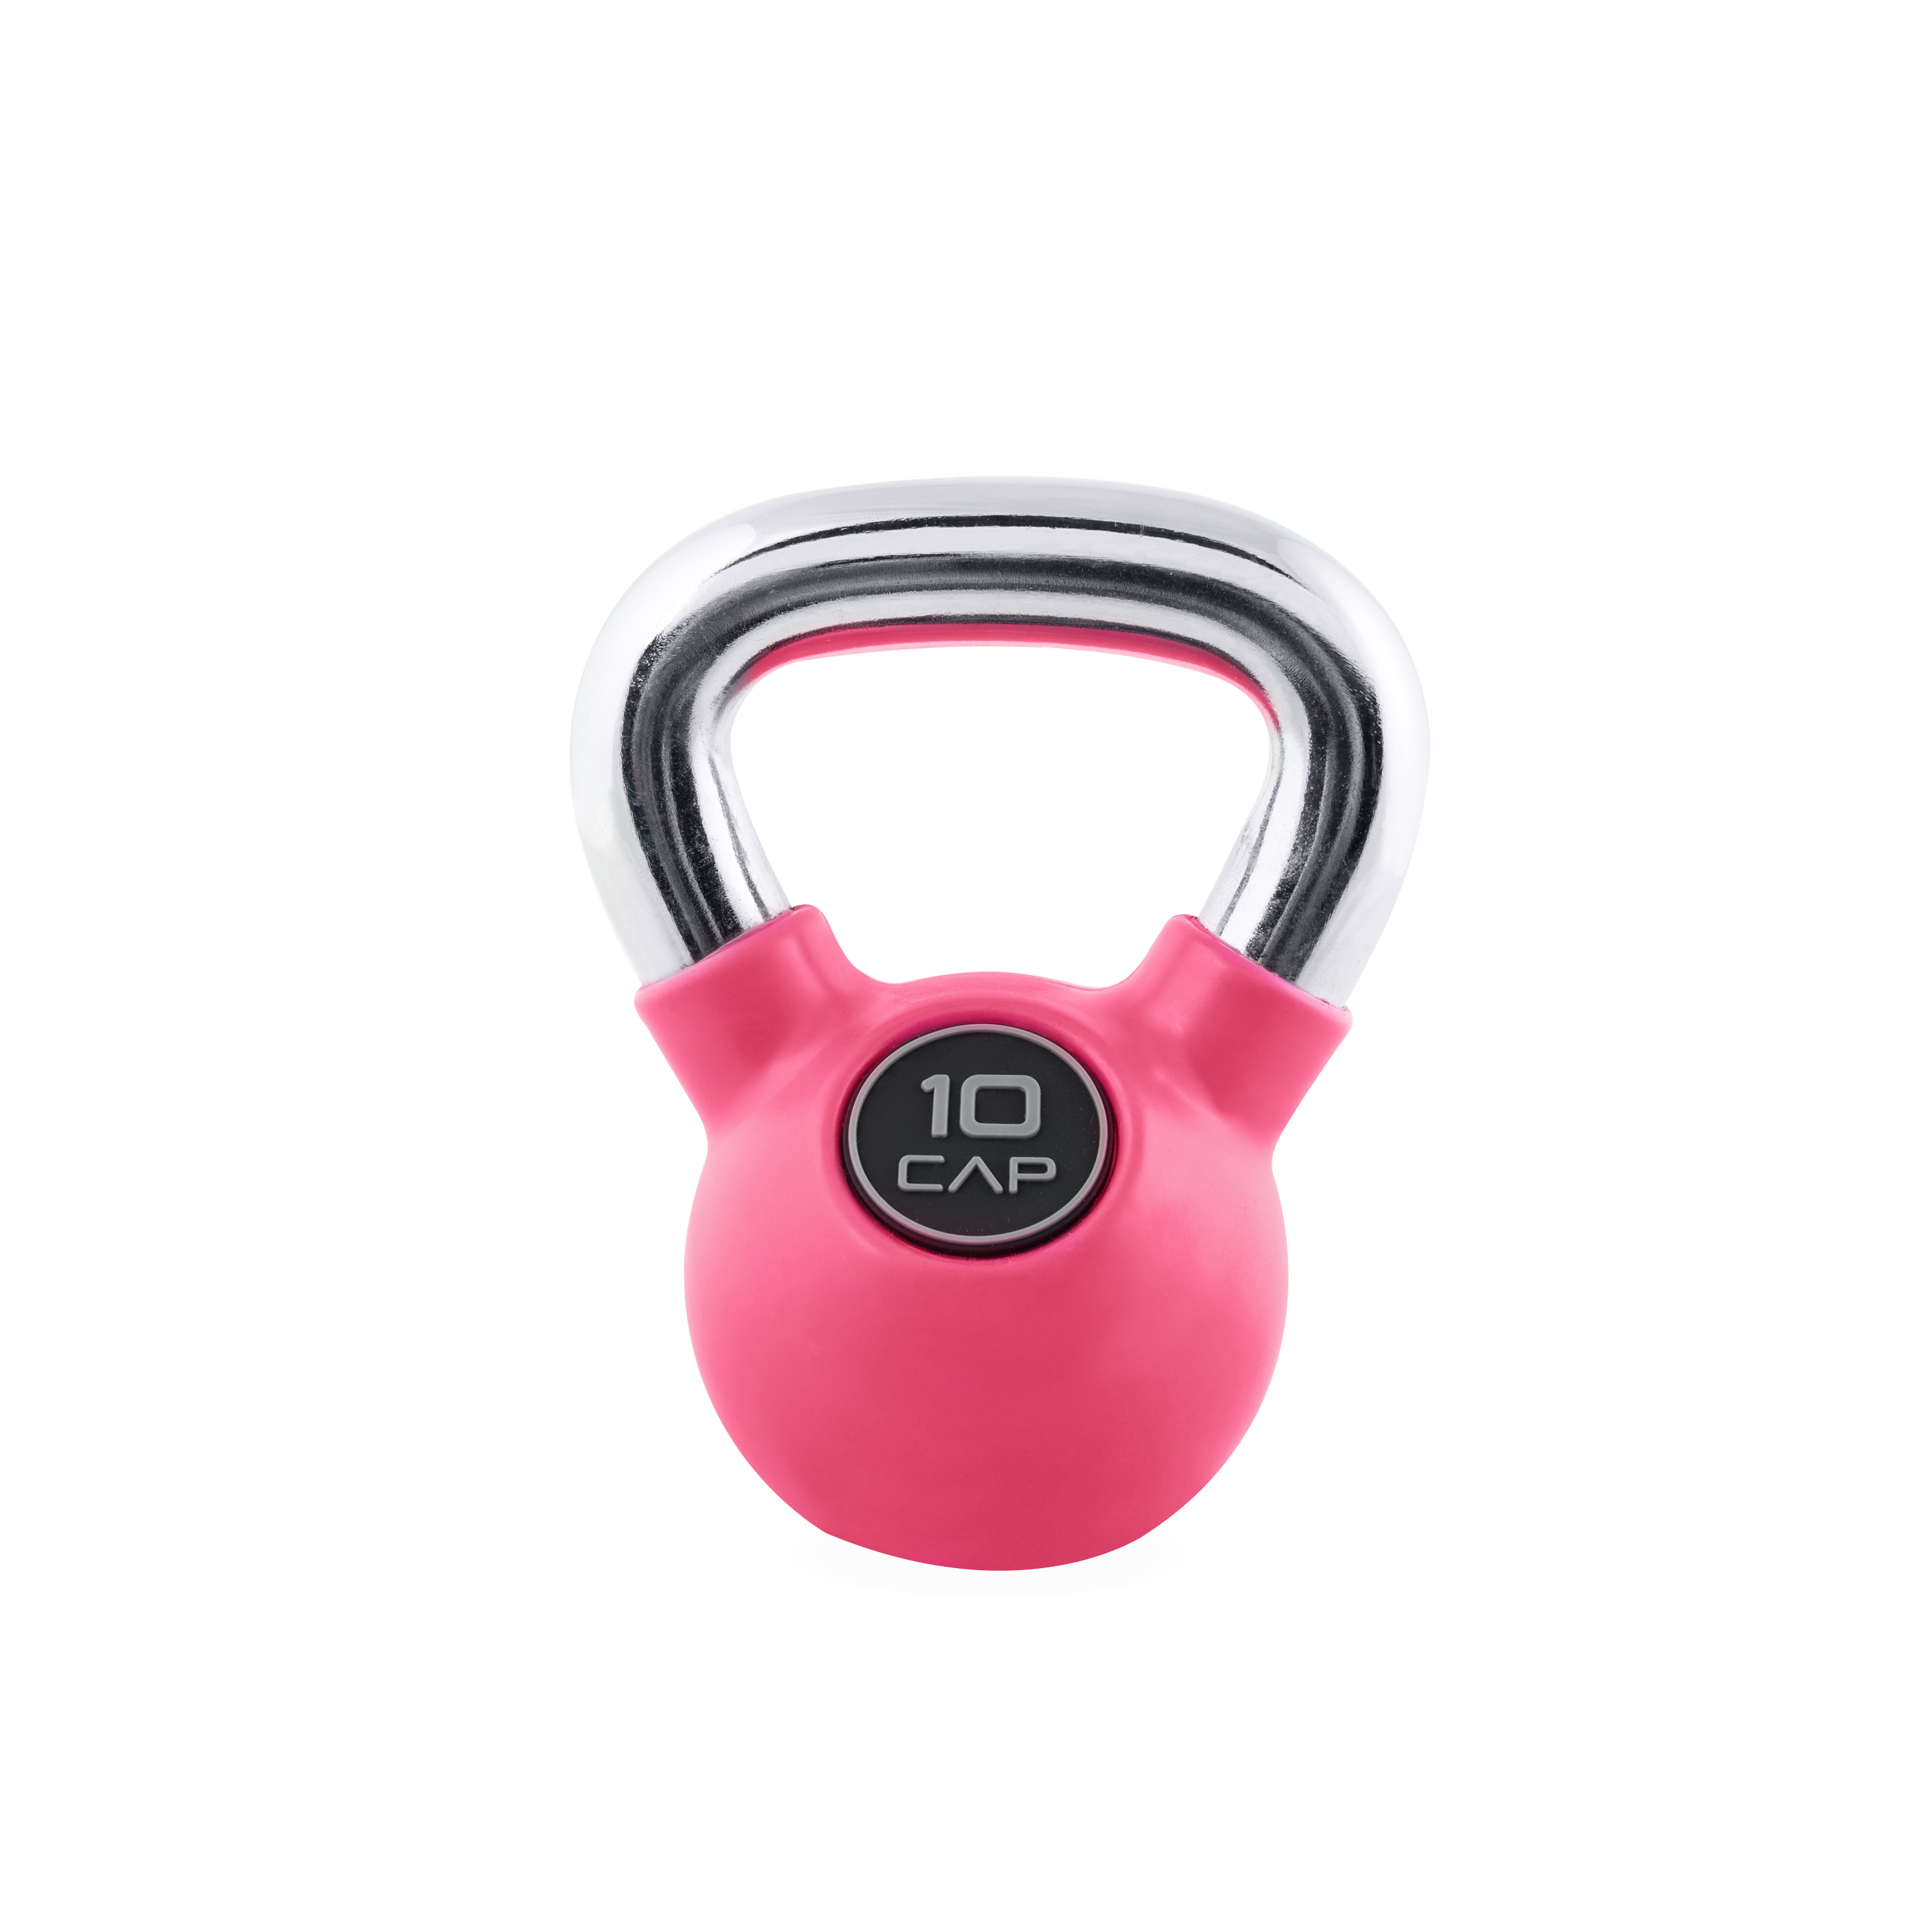 25 lb Premium CAP Kettlebell Weight Training Rubber Coated Chrome Handle NEW